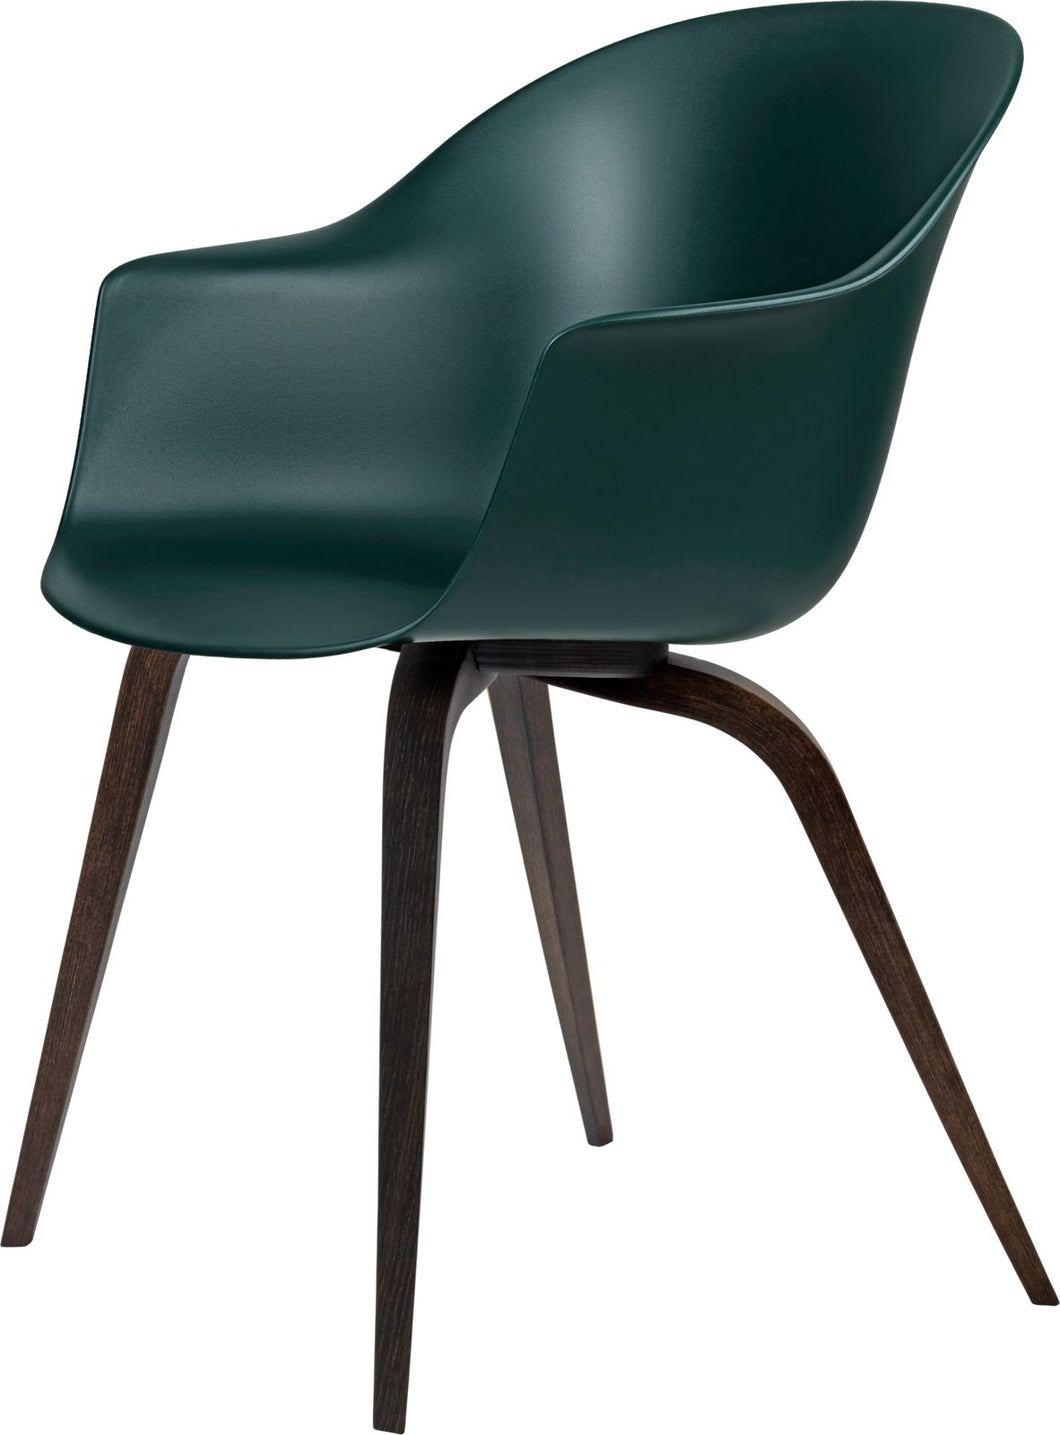 Gubi Bat Dining Chair - Wood Base Smoaked Oak/Dark Green